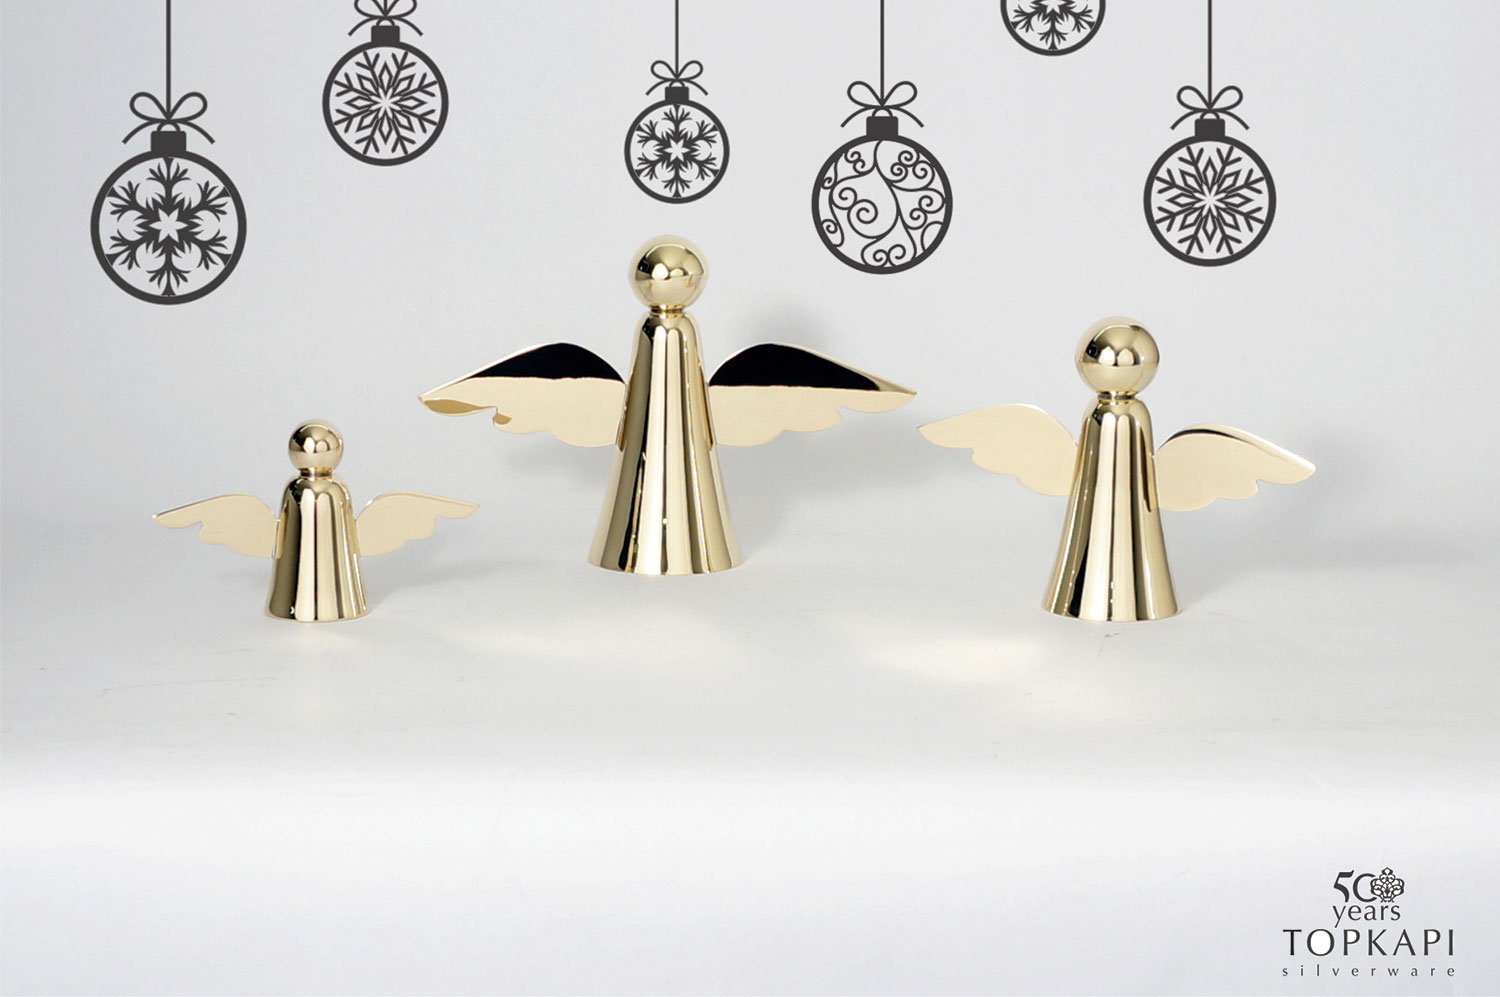 Silver plated set of 3 angels